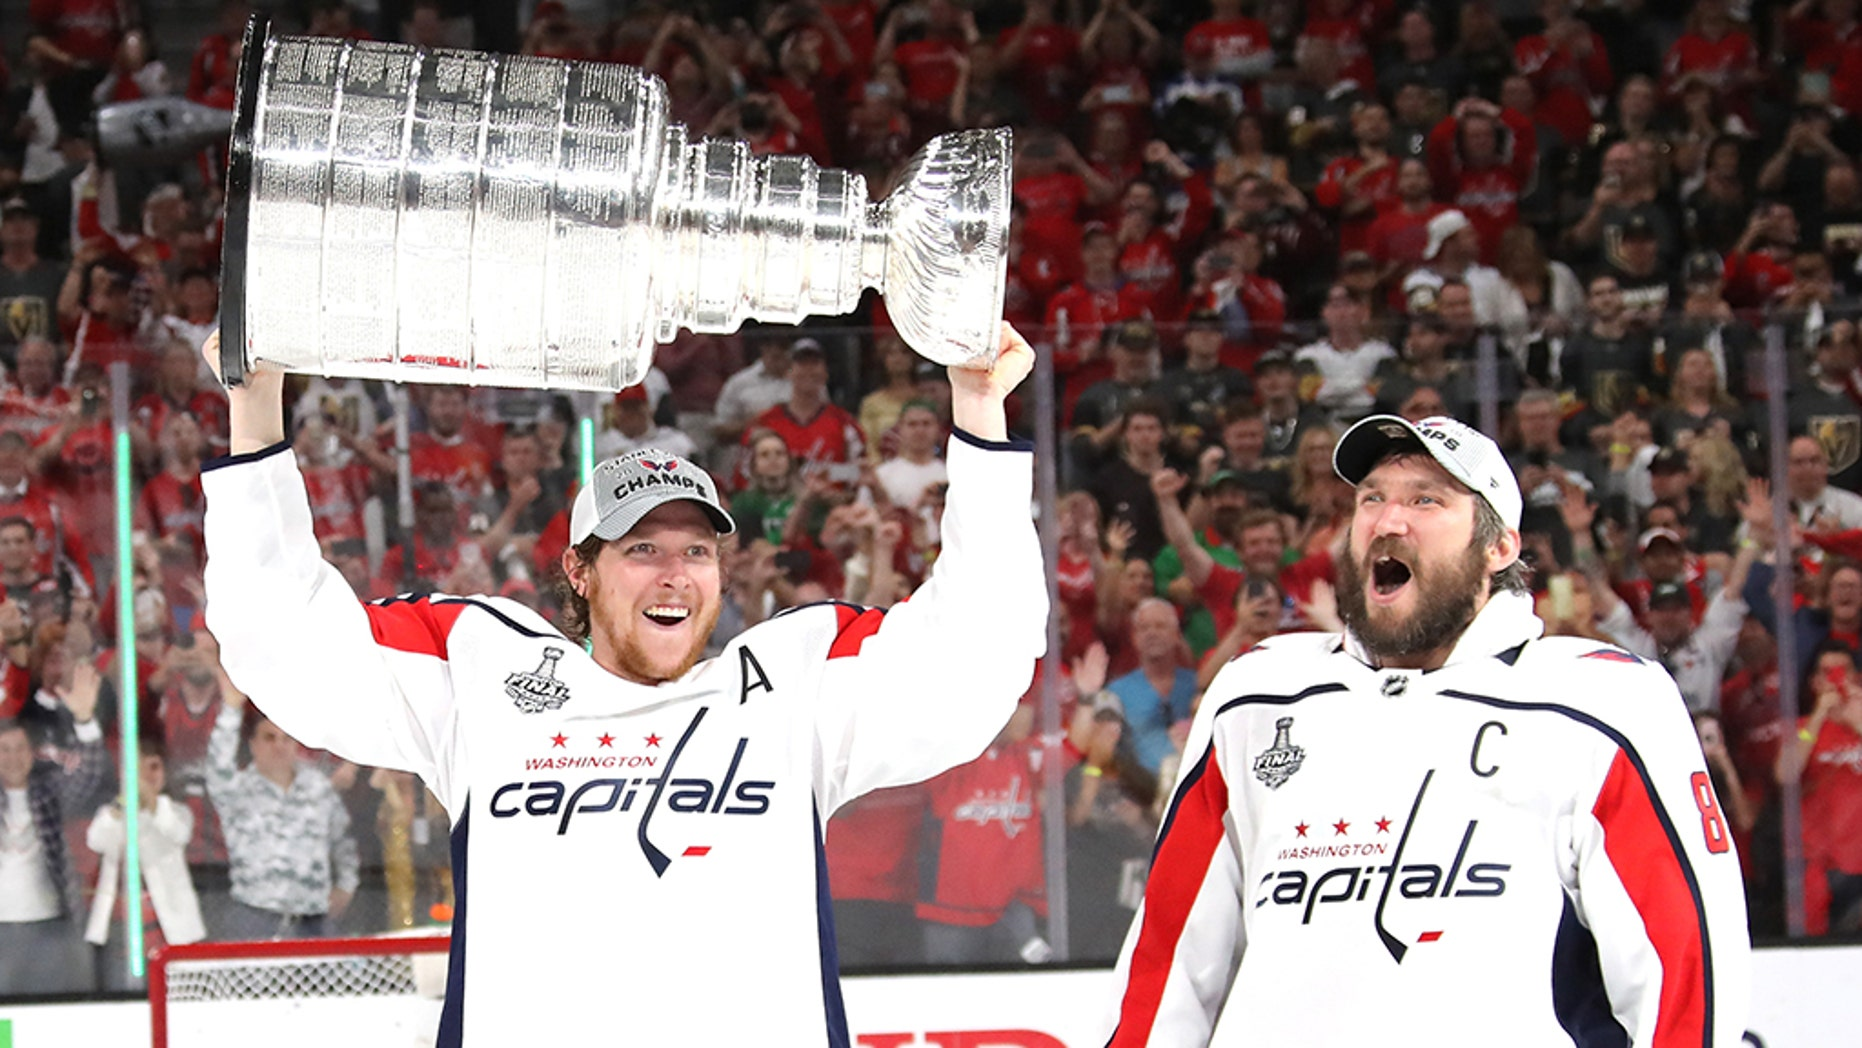 LAS VEGAS, NV - JUNE 07:  Alex Ovechkin #8 hands of the Stanley Cup to Nicklas Backstrom #19 of the Washington Capitals after their team's 4-3 win over the the Vegas Golden Knights in Game Five of the 2018 NHL Stanley Cup Final at T-Mobile Arena on June 7, 2018 in Las Vegas, Nevada.  (Photo by Bruce Bennett/Getty Images)